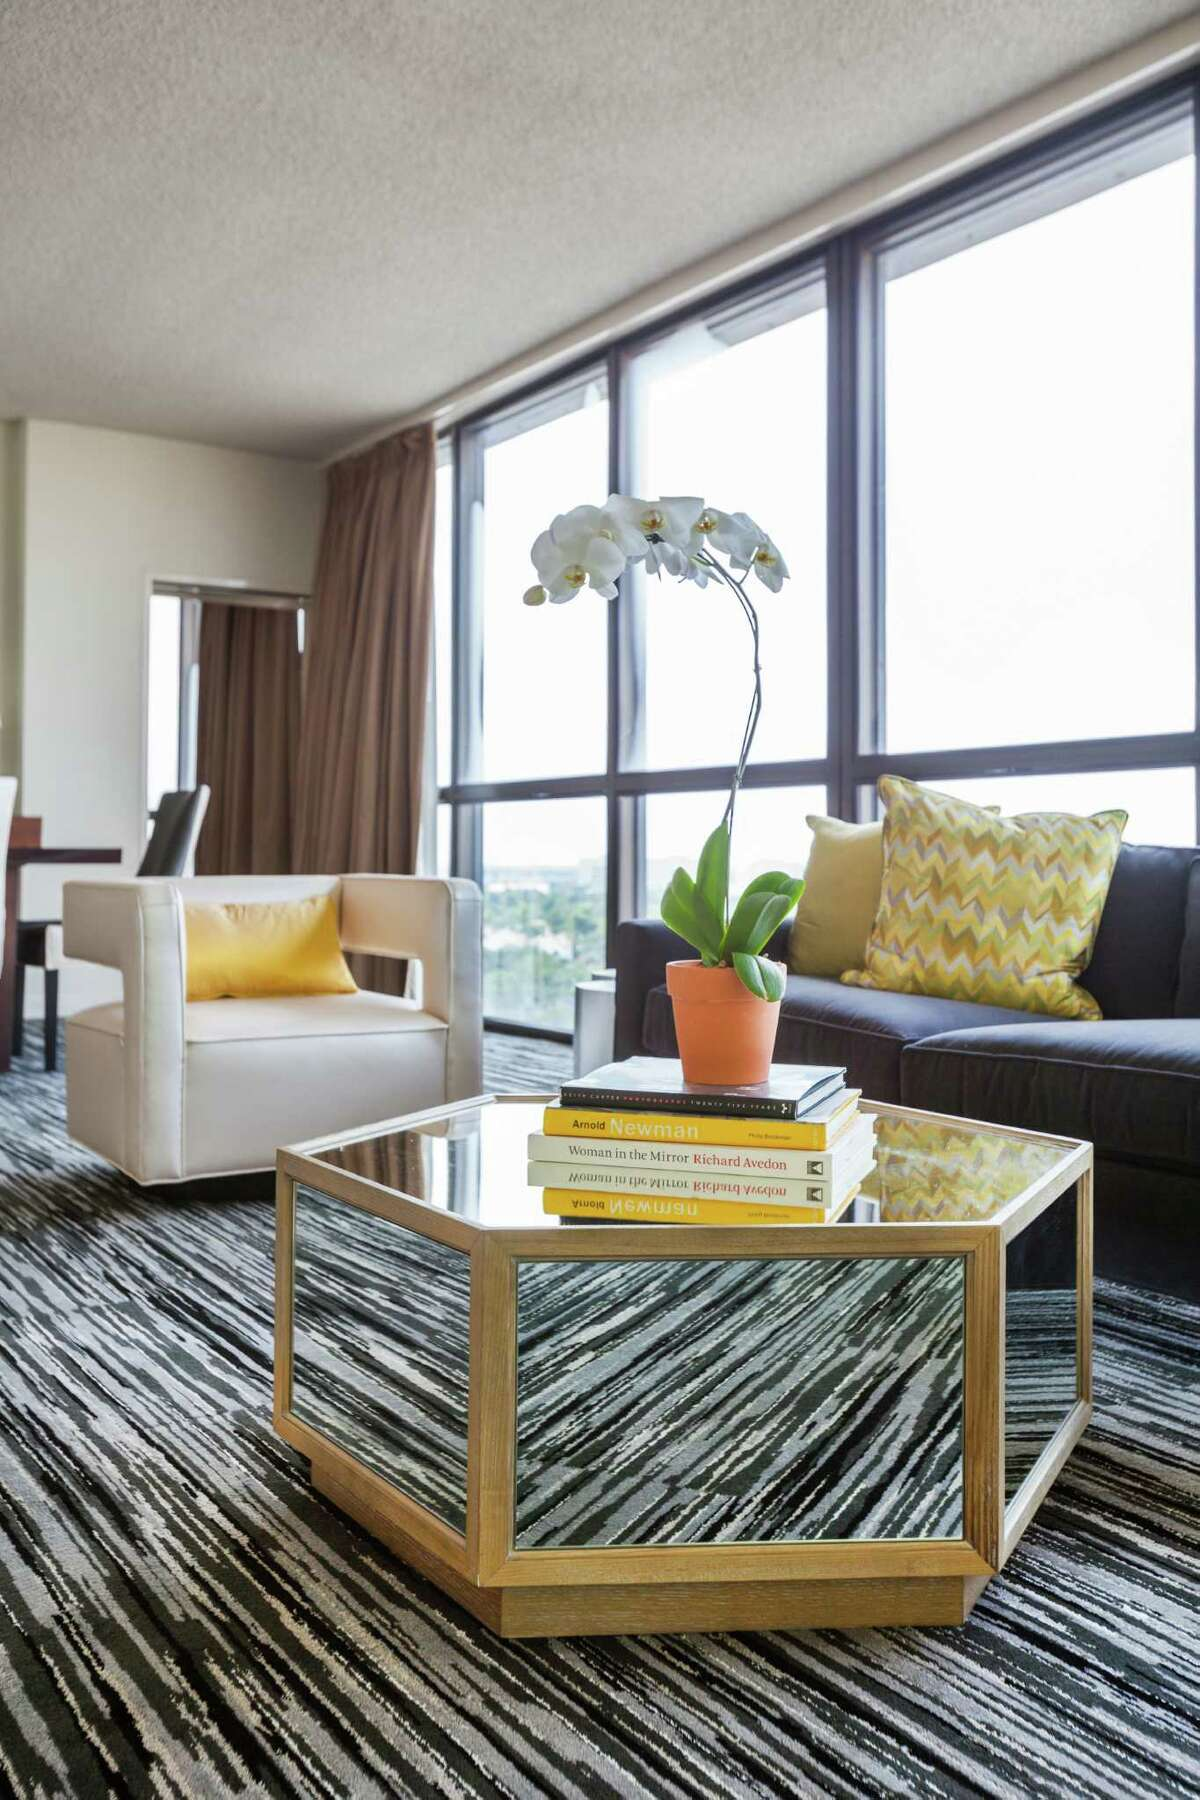 Decor is contemporary in Hotel Derek's penthouse suites, which offer top-notch views of the city.